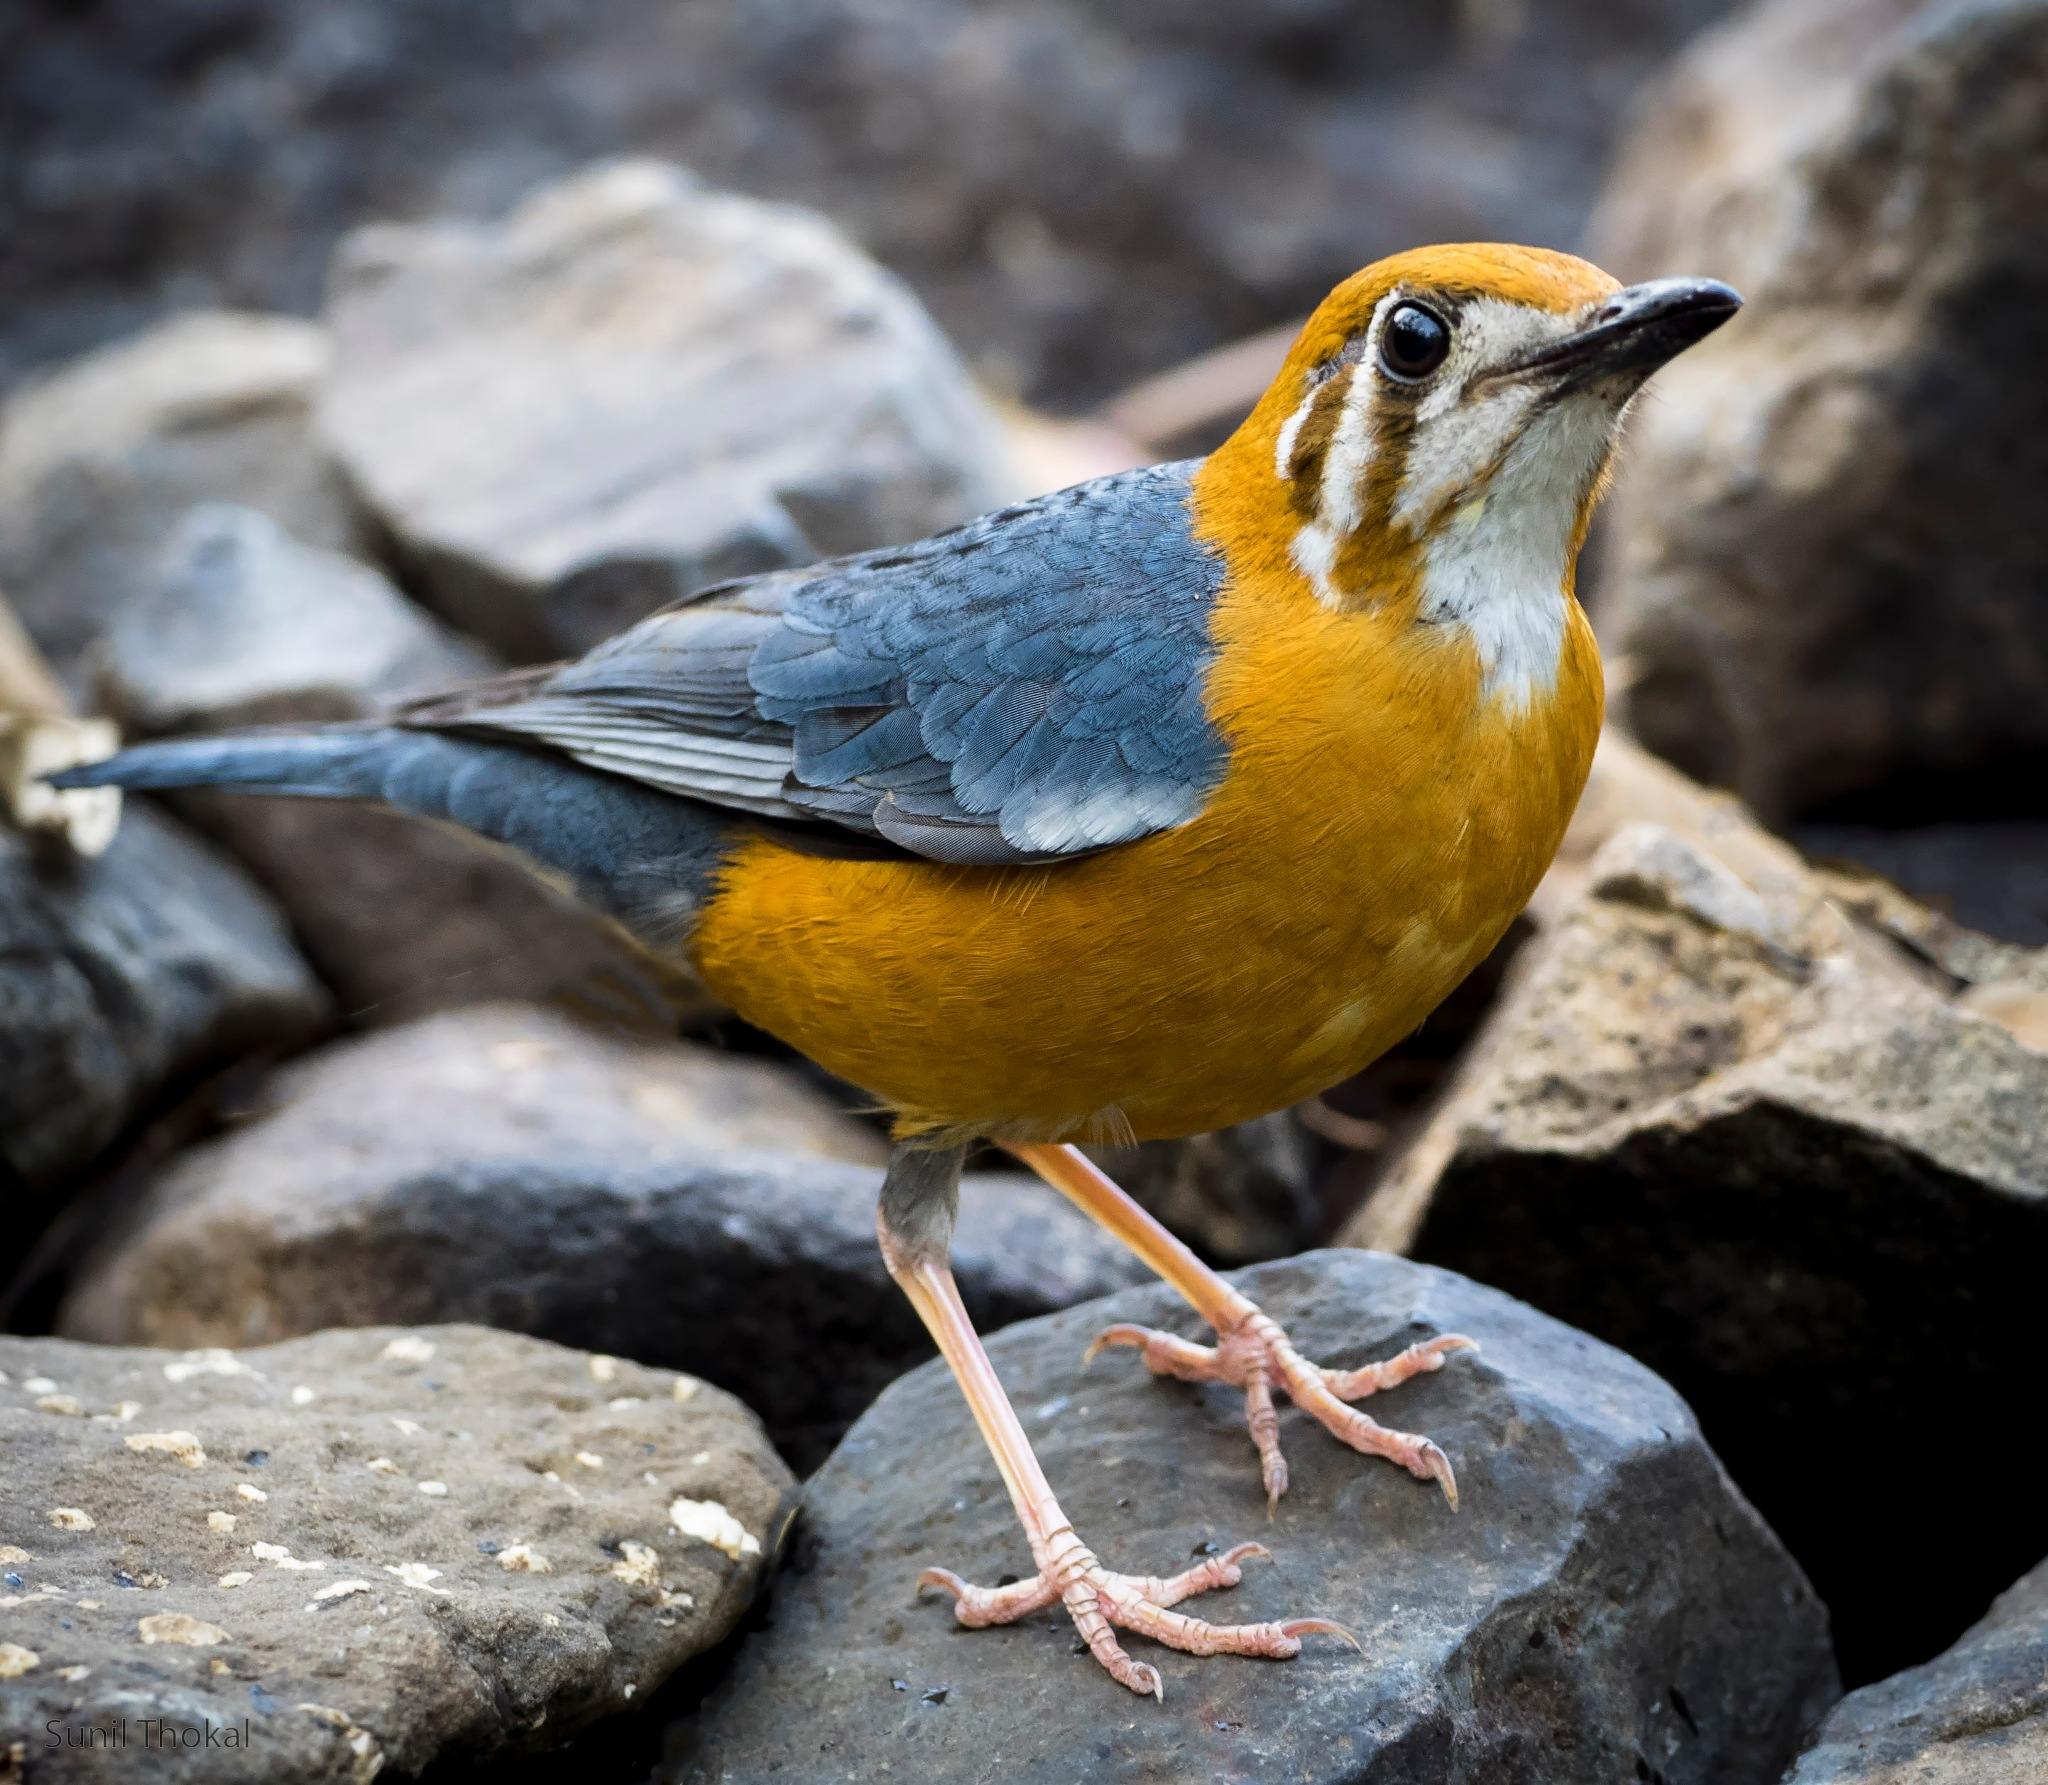 Orange Headed Thrush by Sunil Prabhakar Thokal